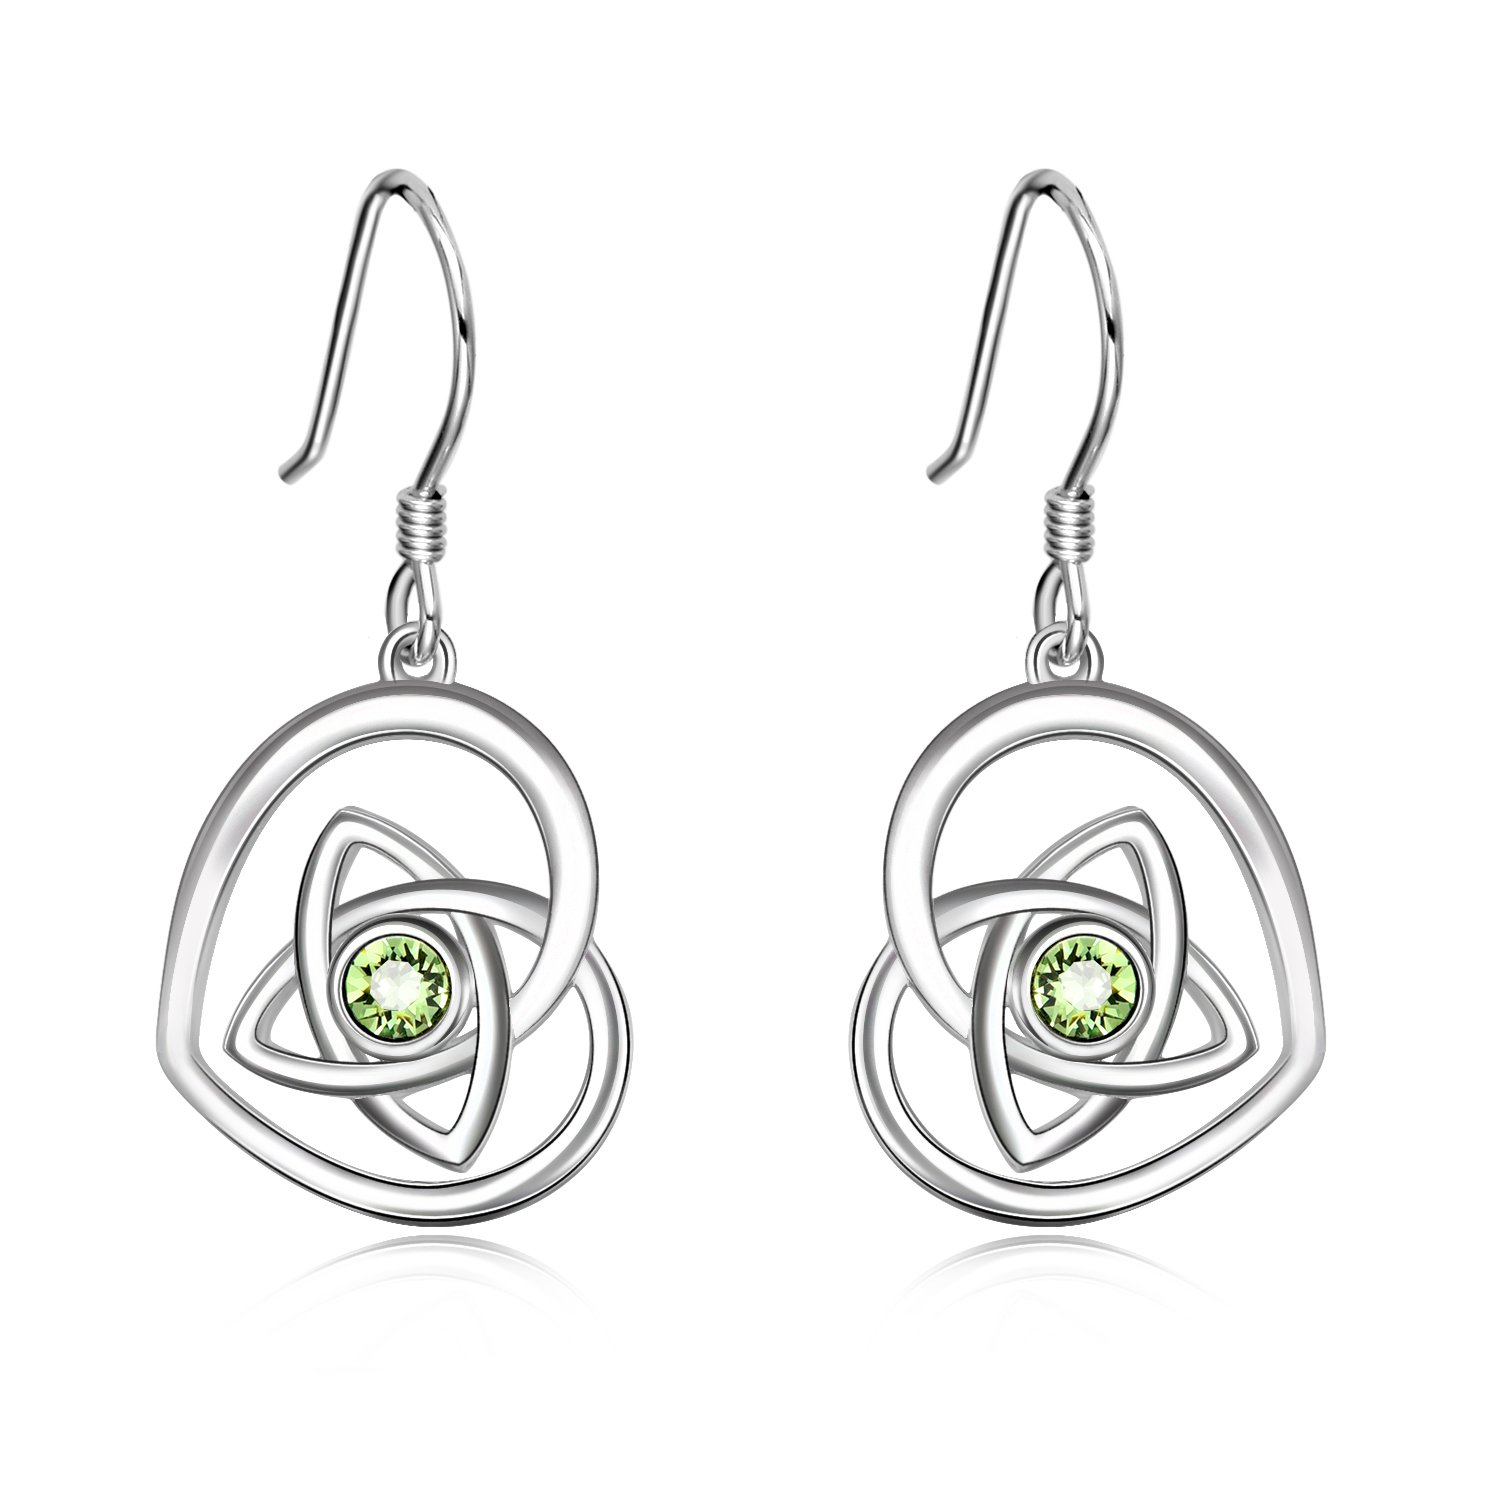 Sterling Silver Irish Celtic Knot Love Heart French Hook Dangle Earrings With Green Swarovski Crystal Jewelry Gifts for Women Girls